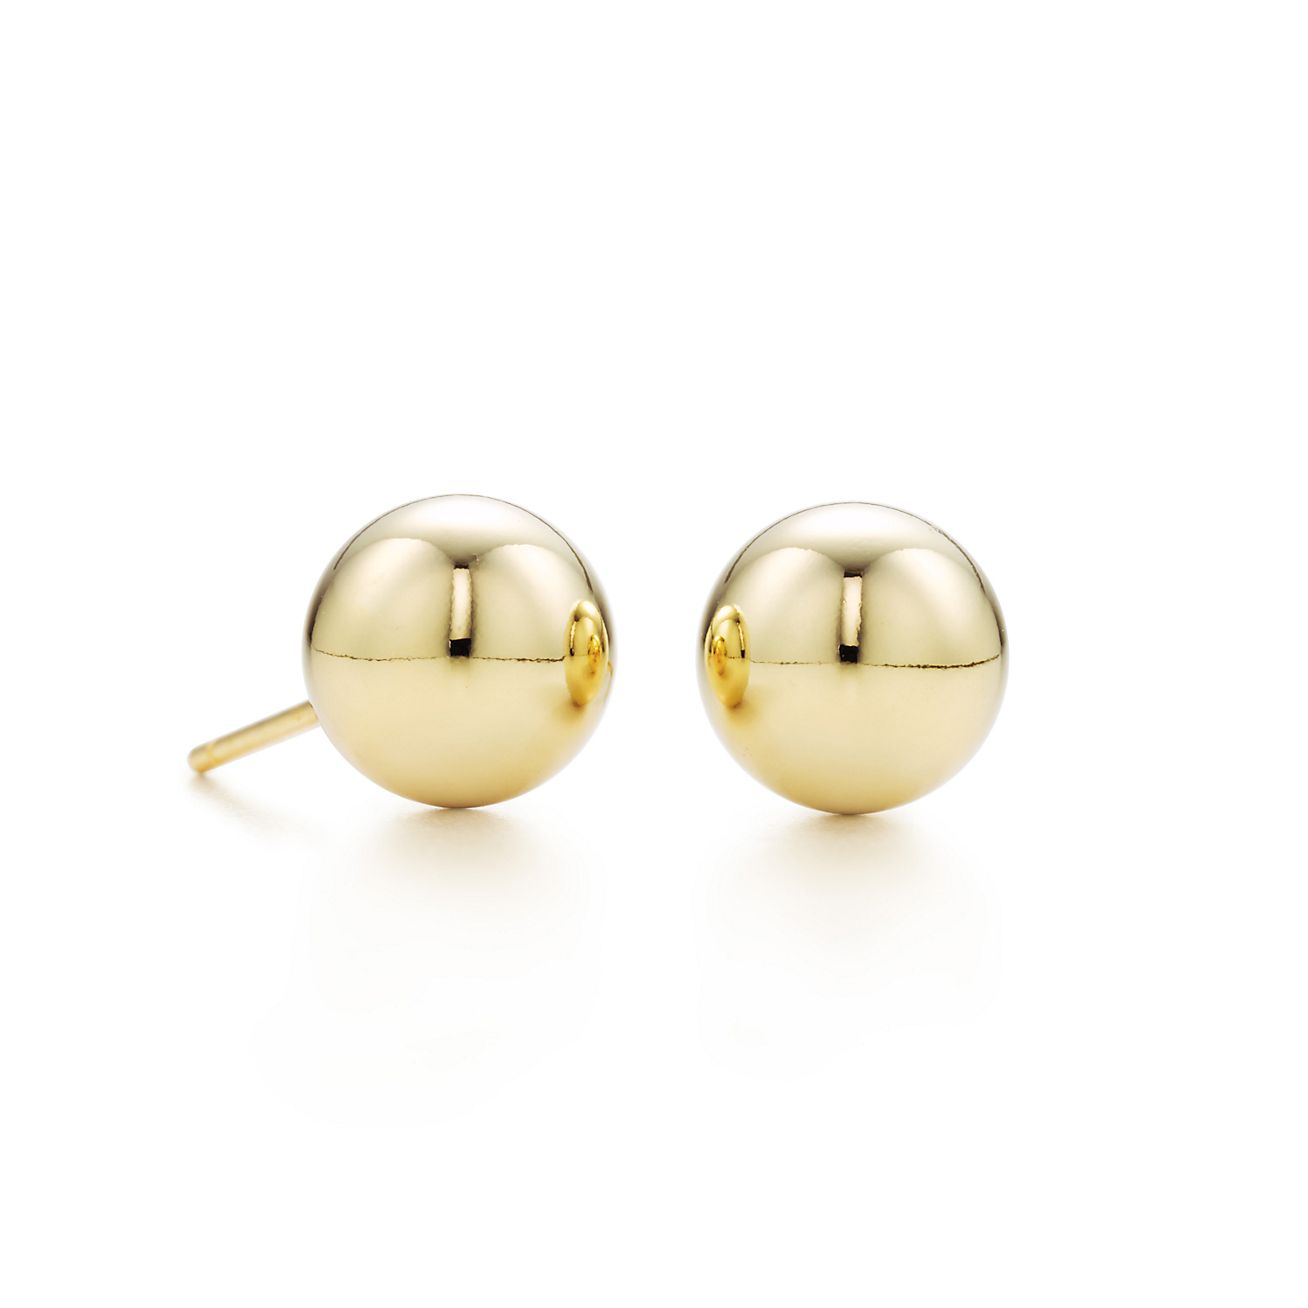 Tiffany City HardWear ball earrings in sterling silver - Size 8mm diameter Tiffany & Co. cprQZHJjO